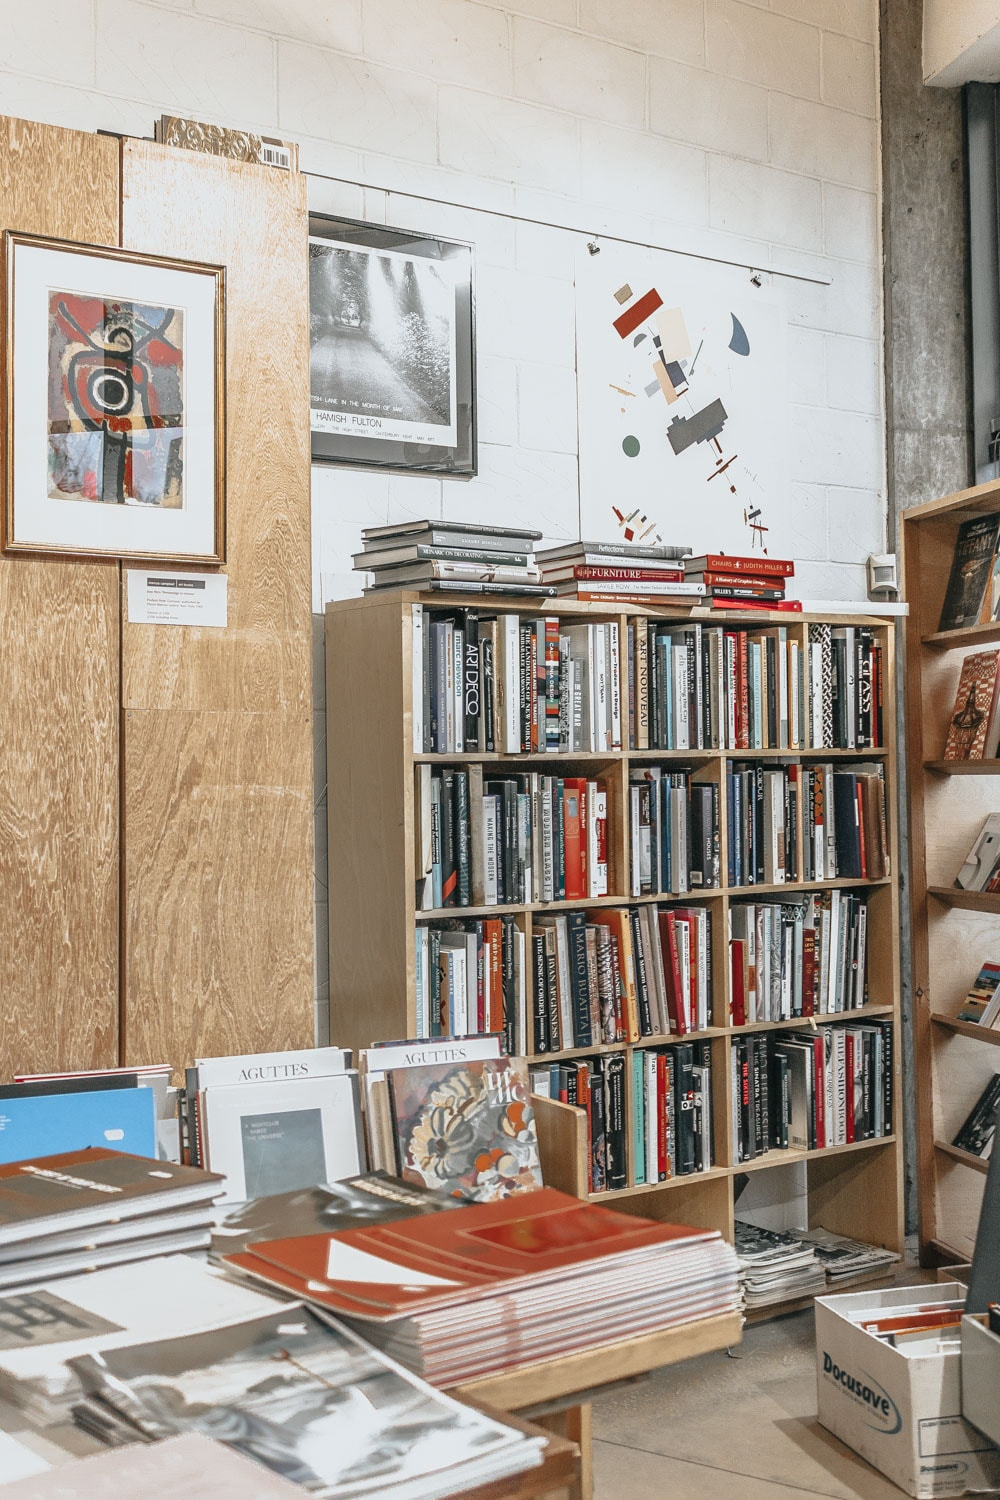 MARCUS CAMPBELL, ART BOOKS, LONDON, BLOG